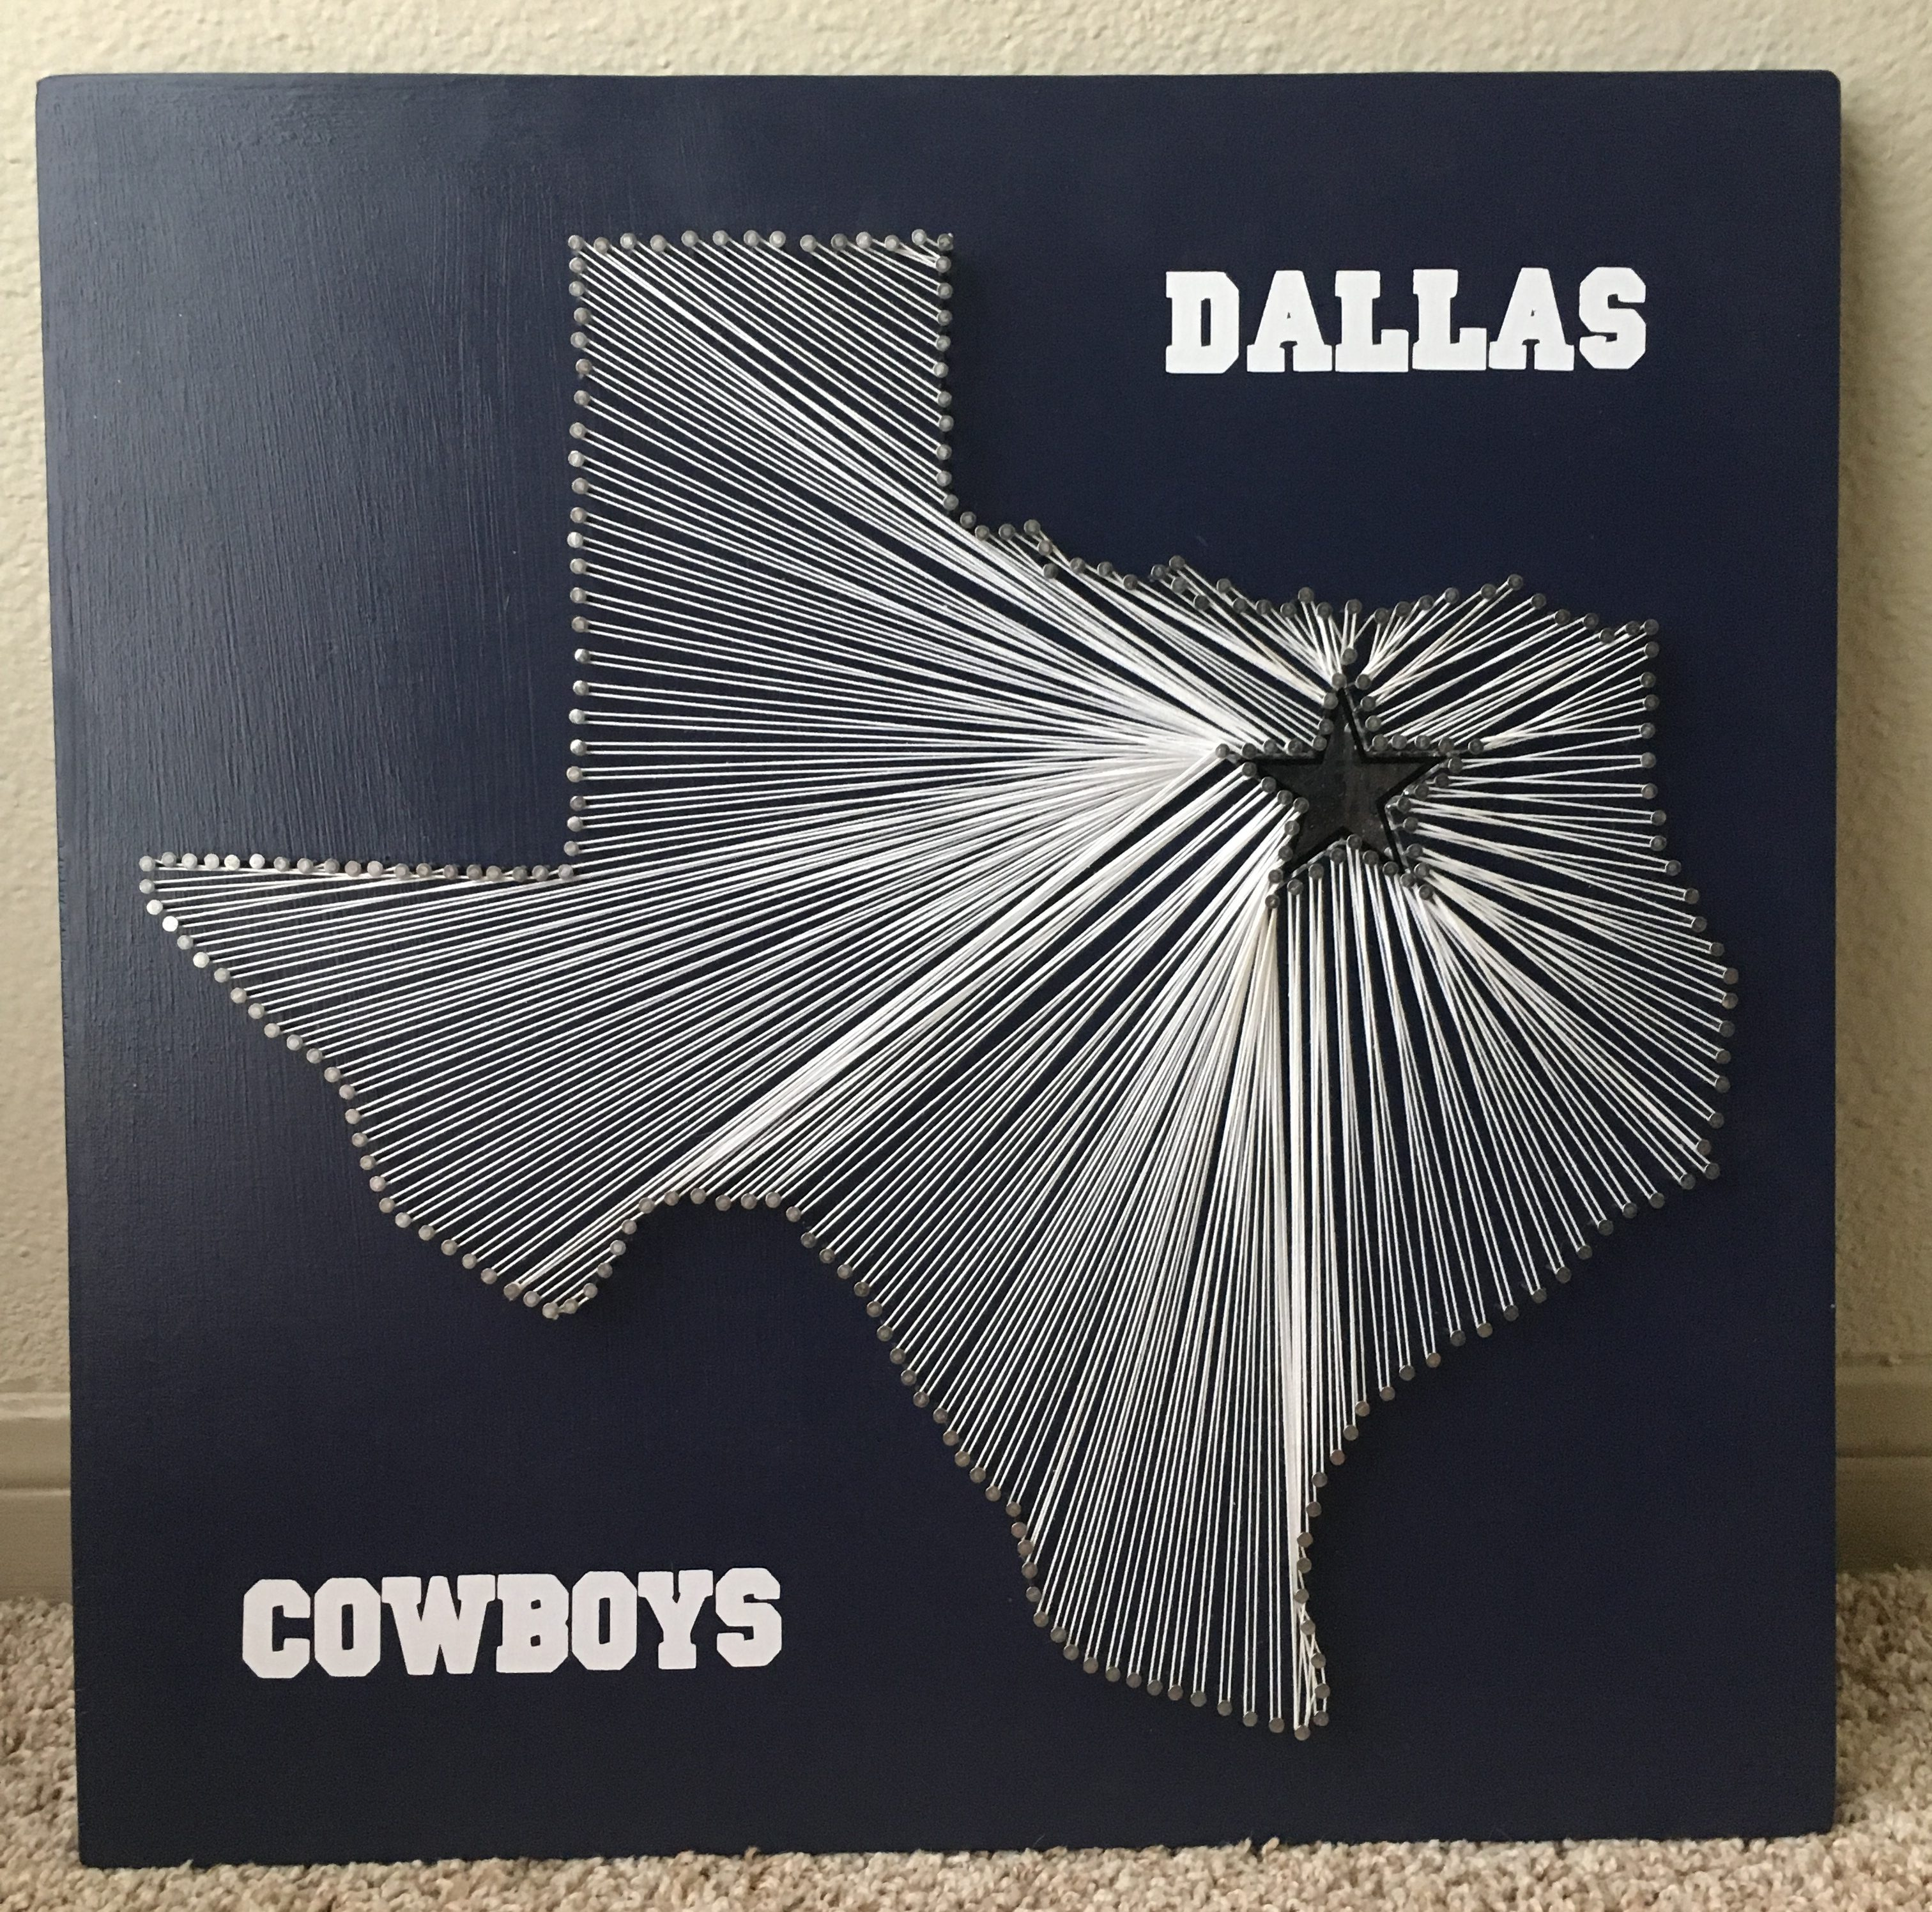 A christmas gift for my boyfriend a die hard dallas cowboys fan i decided that a cowboys string art in the shape of our beloved state of texas would